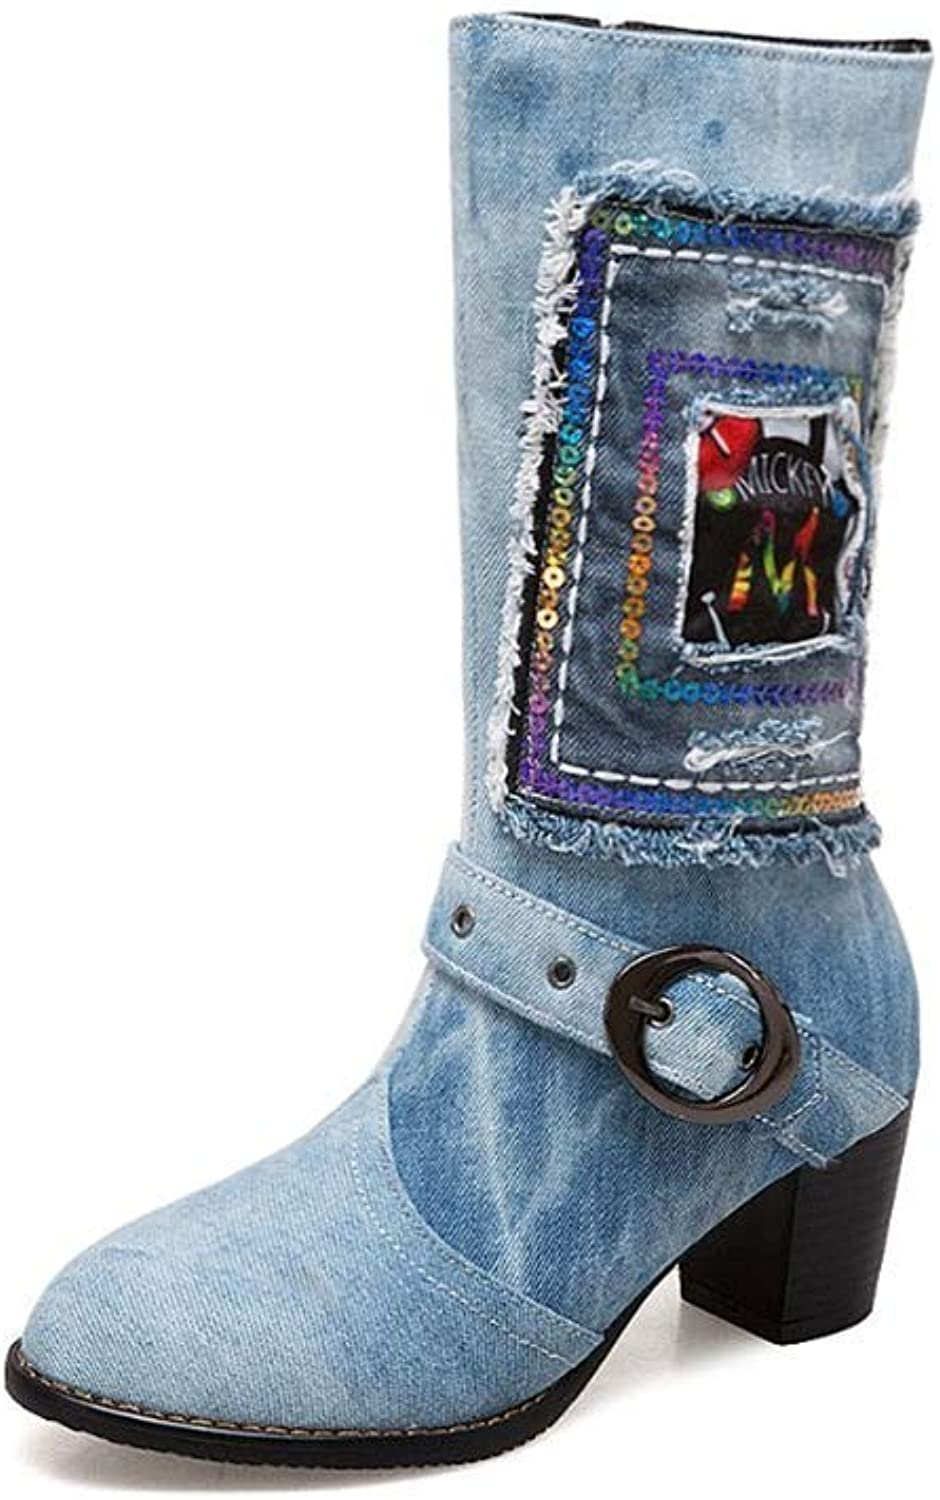 Webb Perkin Women Mid Calf Design Denim Embroider High Square Heels Large Buckle shoes Lady Fashion Boots